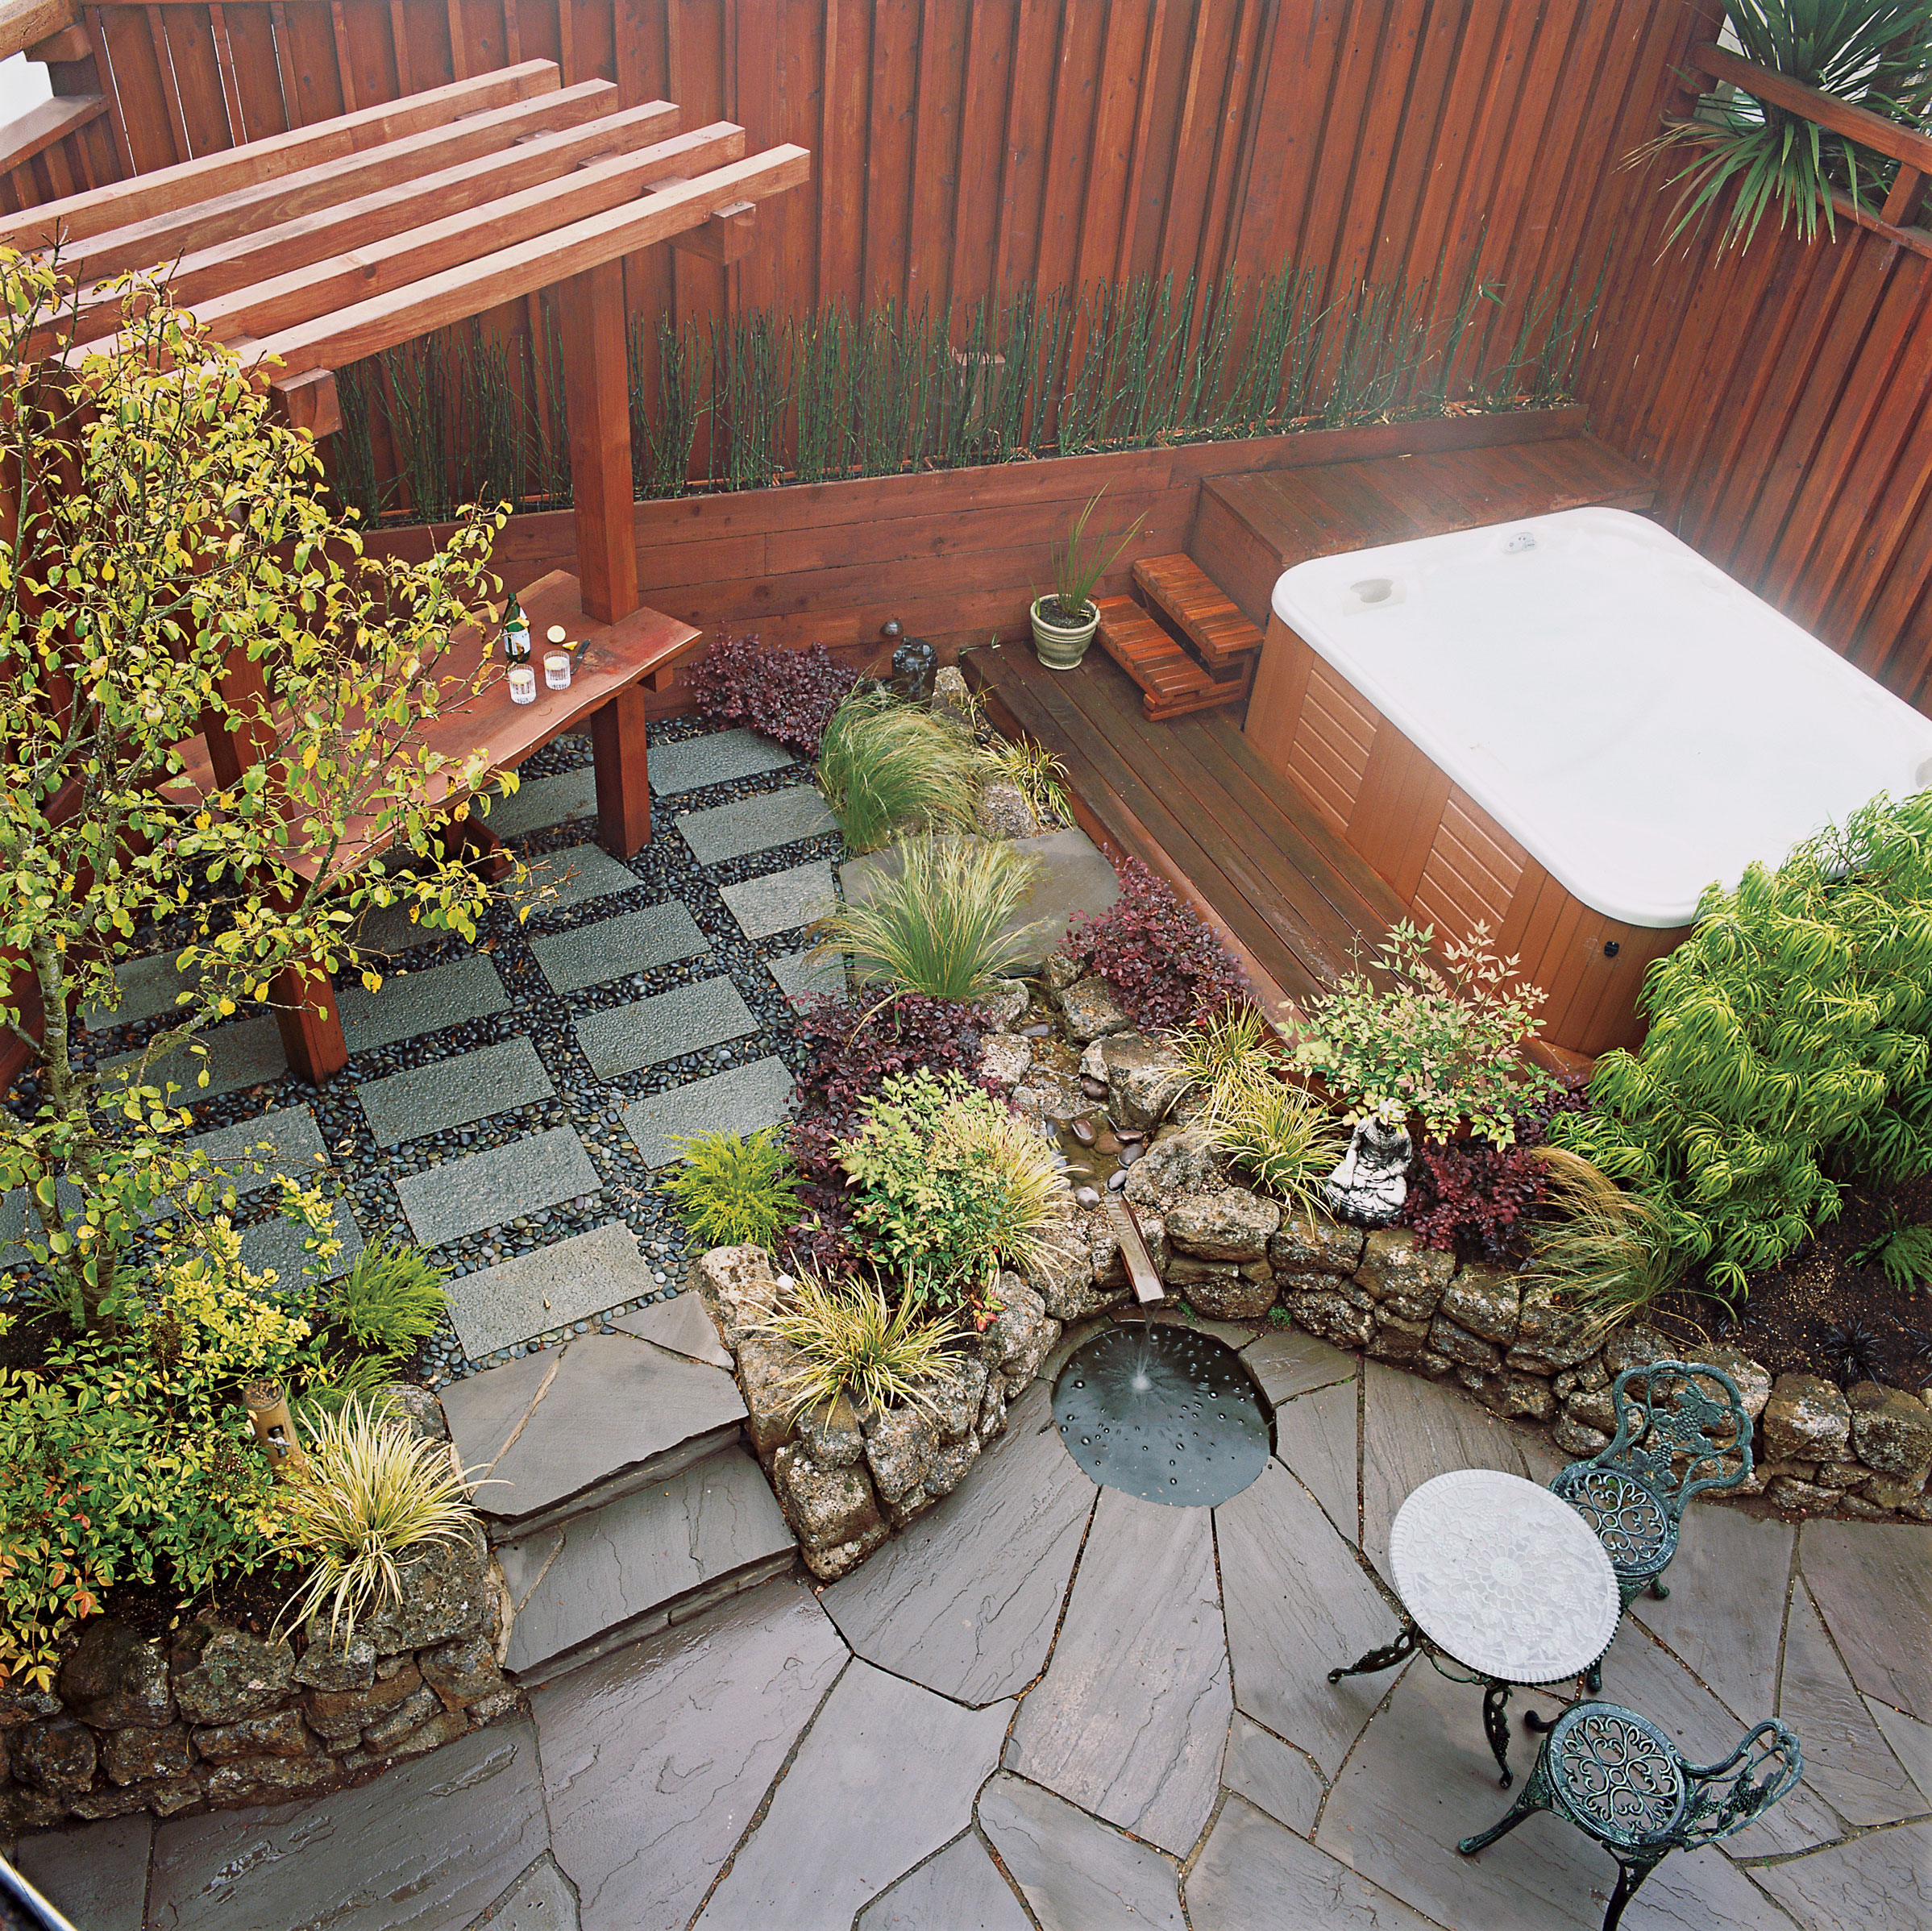 Small garden secrets - Sunset Magazine